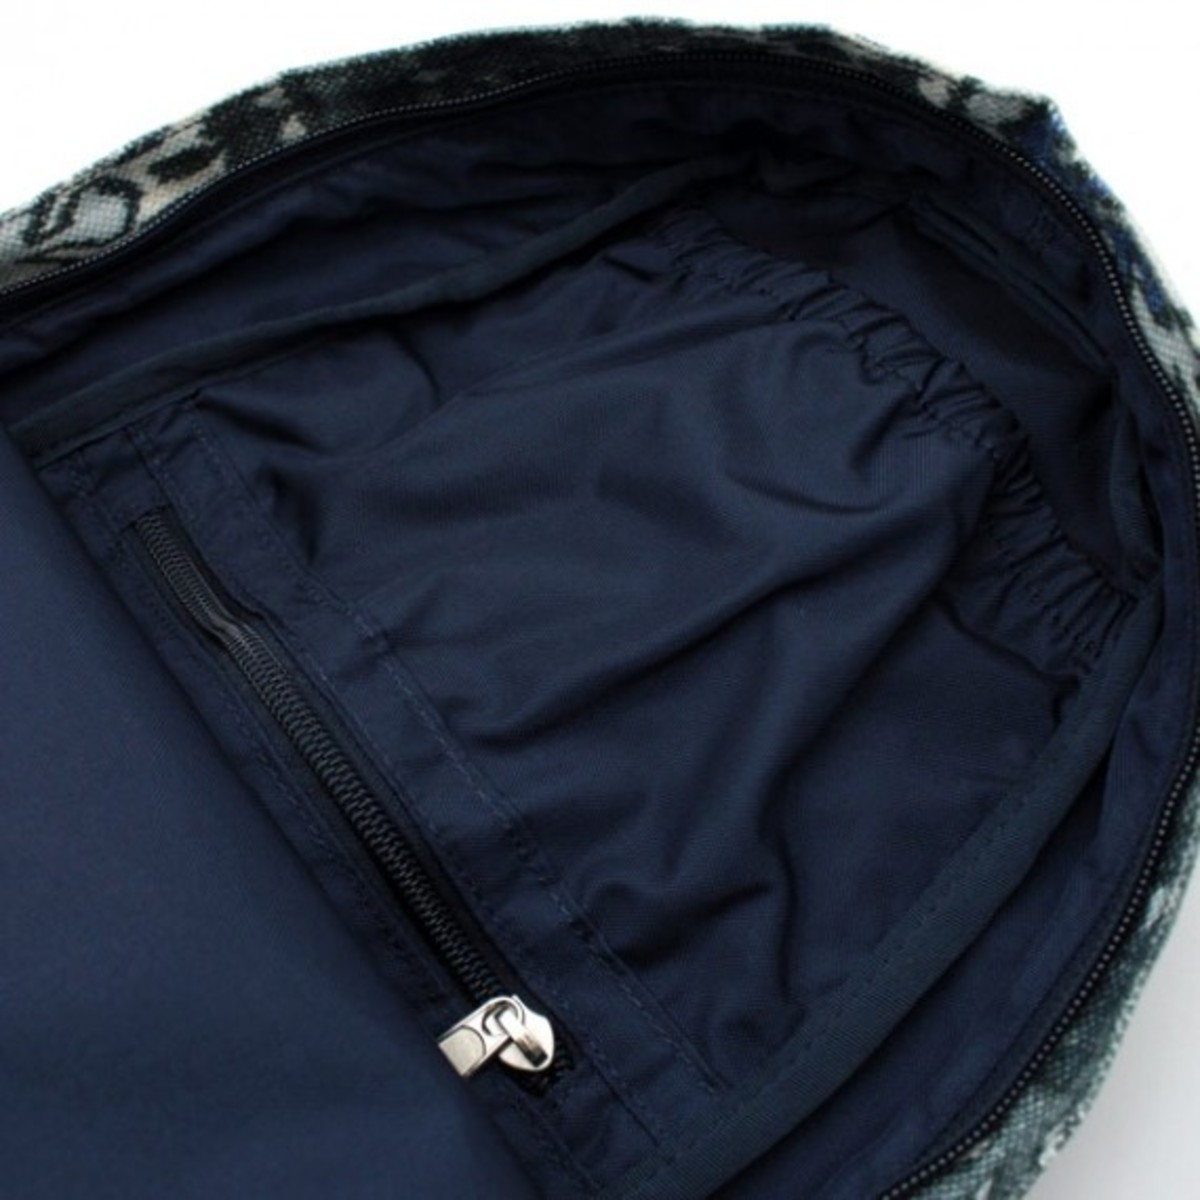 the-north-face-purple-label-fall-2012-bag-collection-14